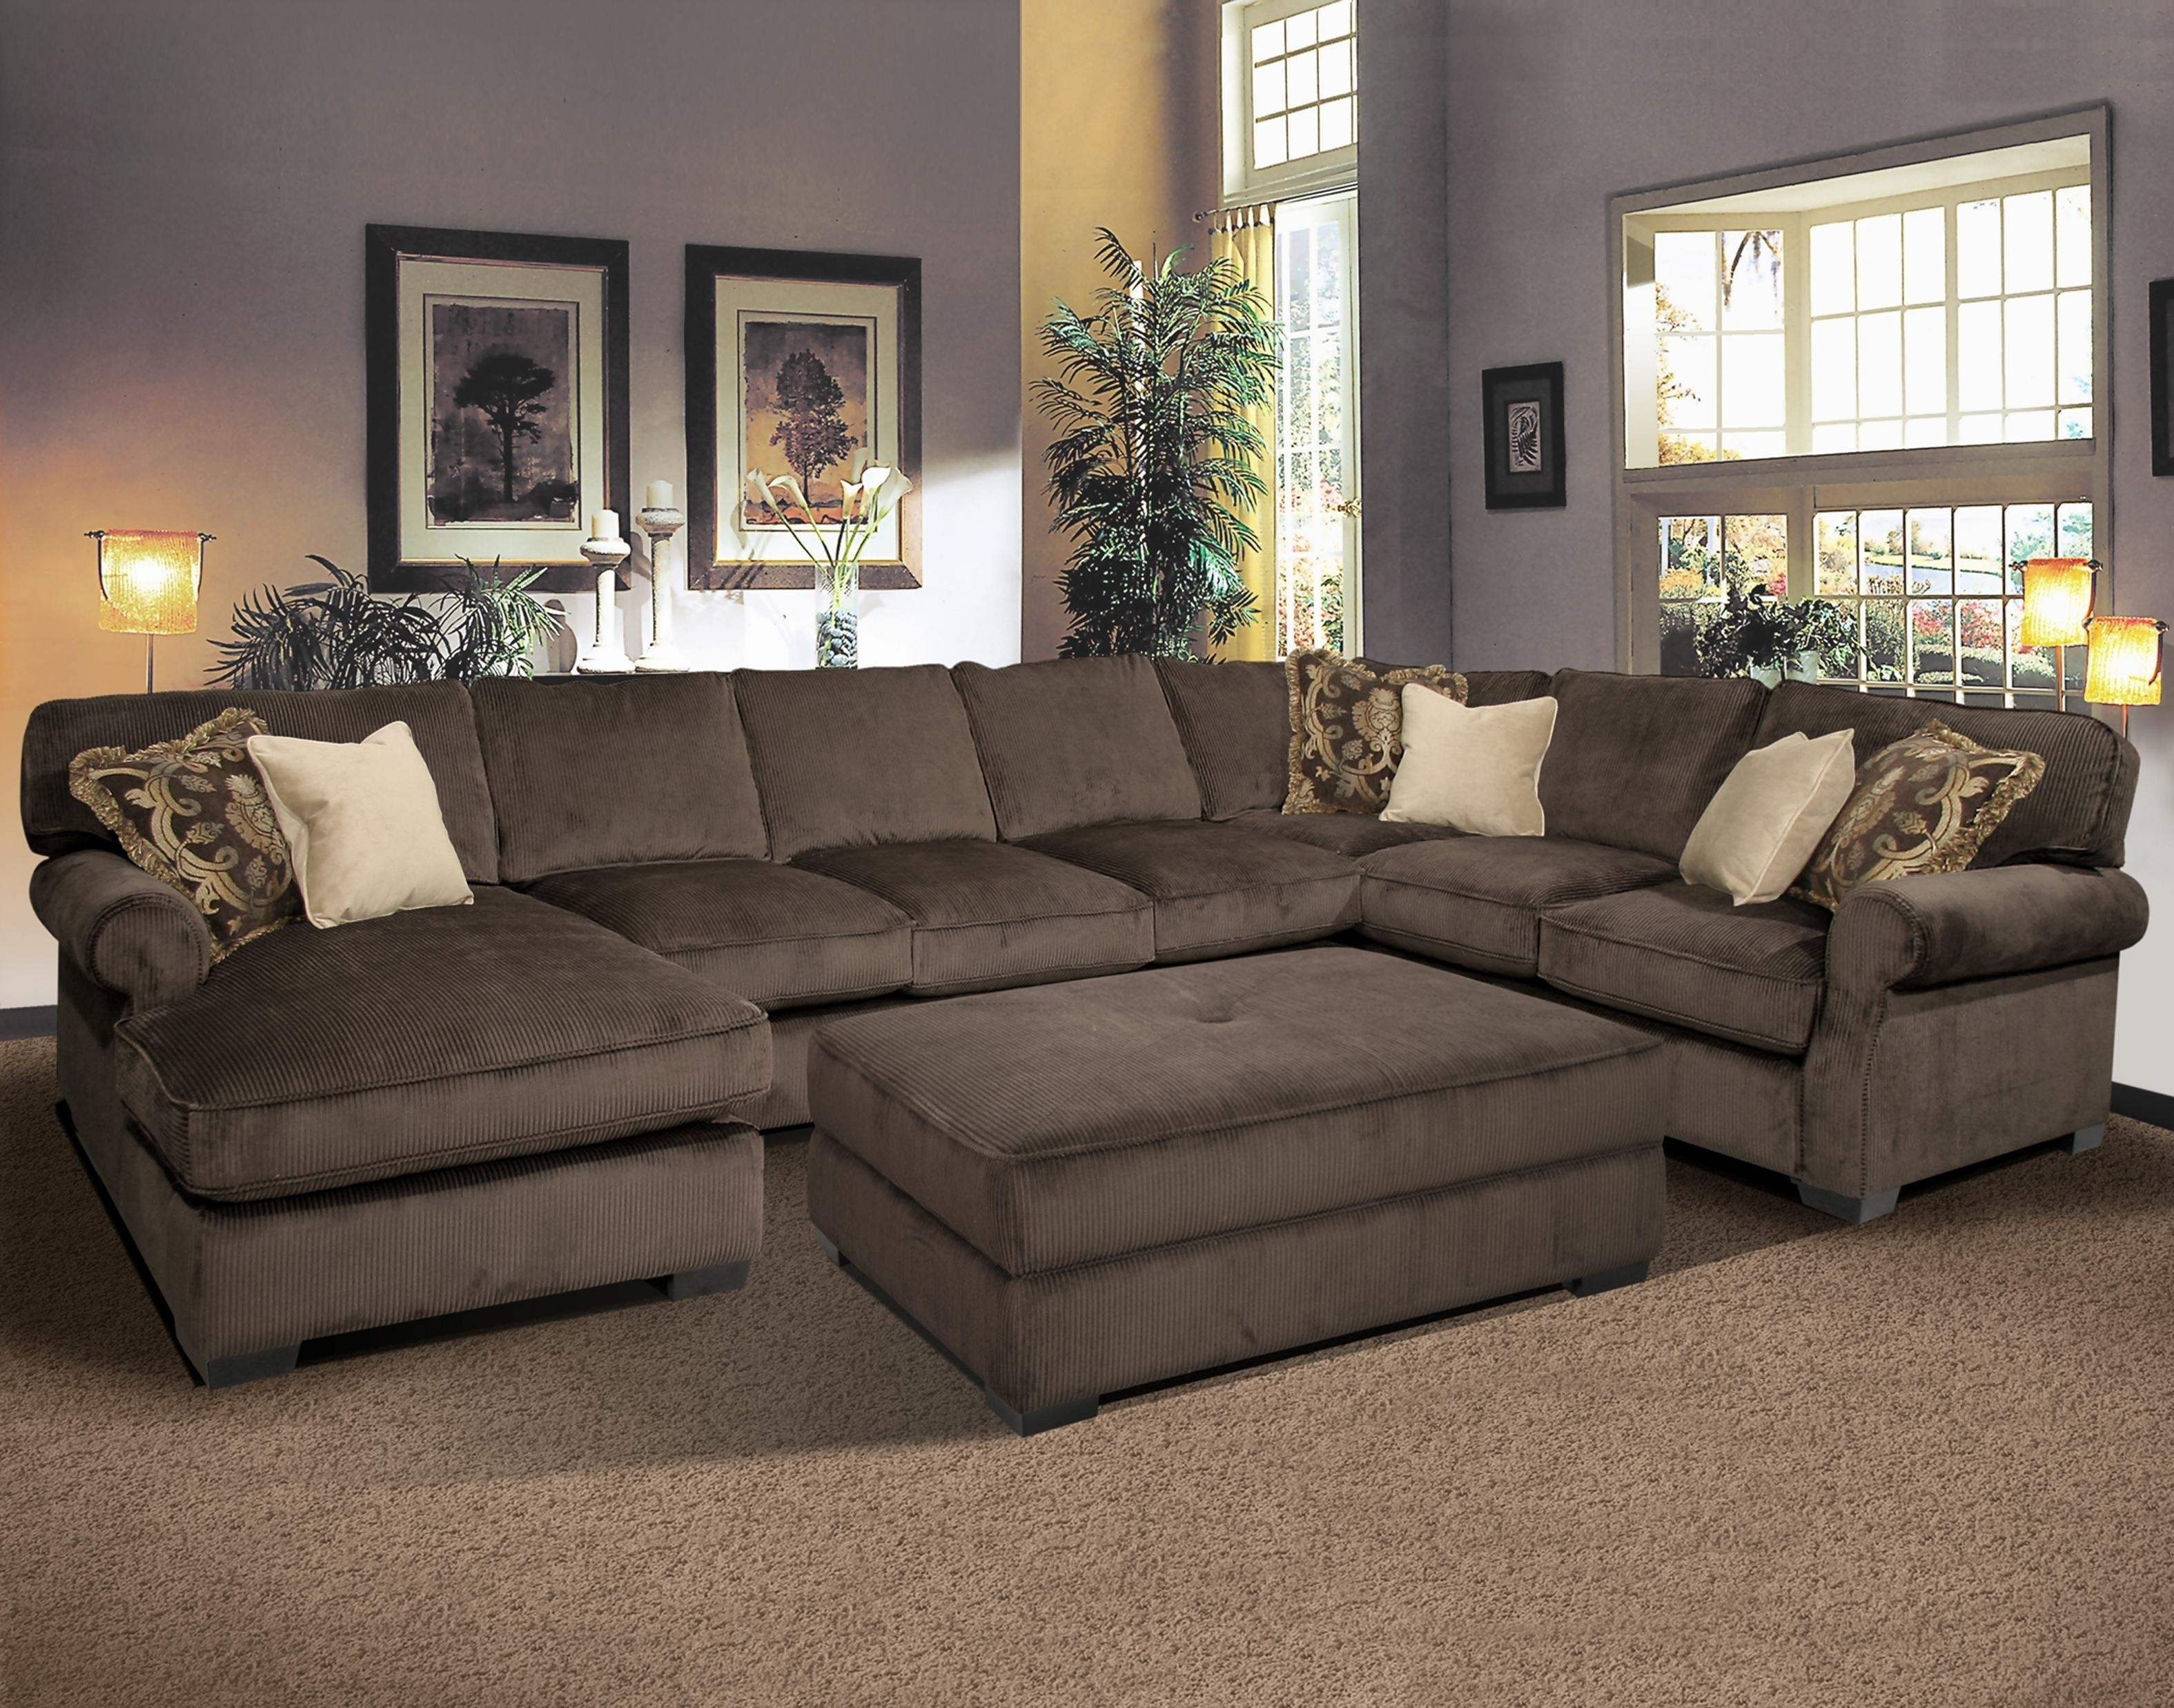 20+ Choices Of Houston Sectional Sofa | Sofa Ideas Intended For Sectional Sofas In Houston Tx (Gallery 3 of 10)